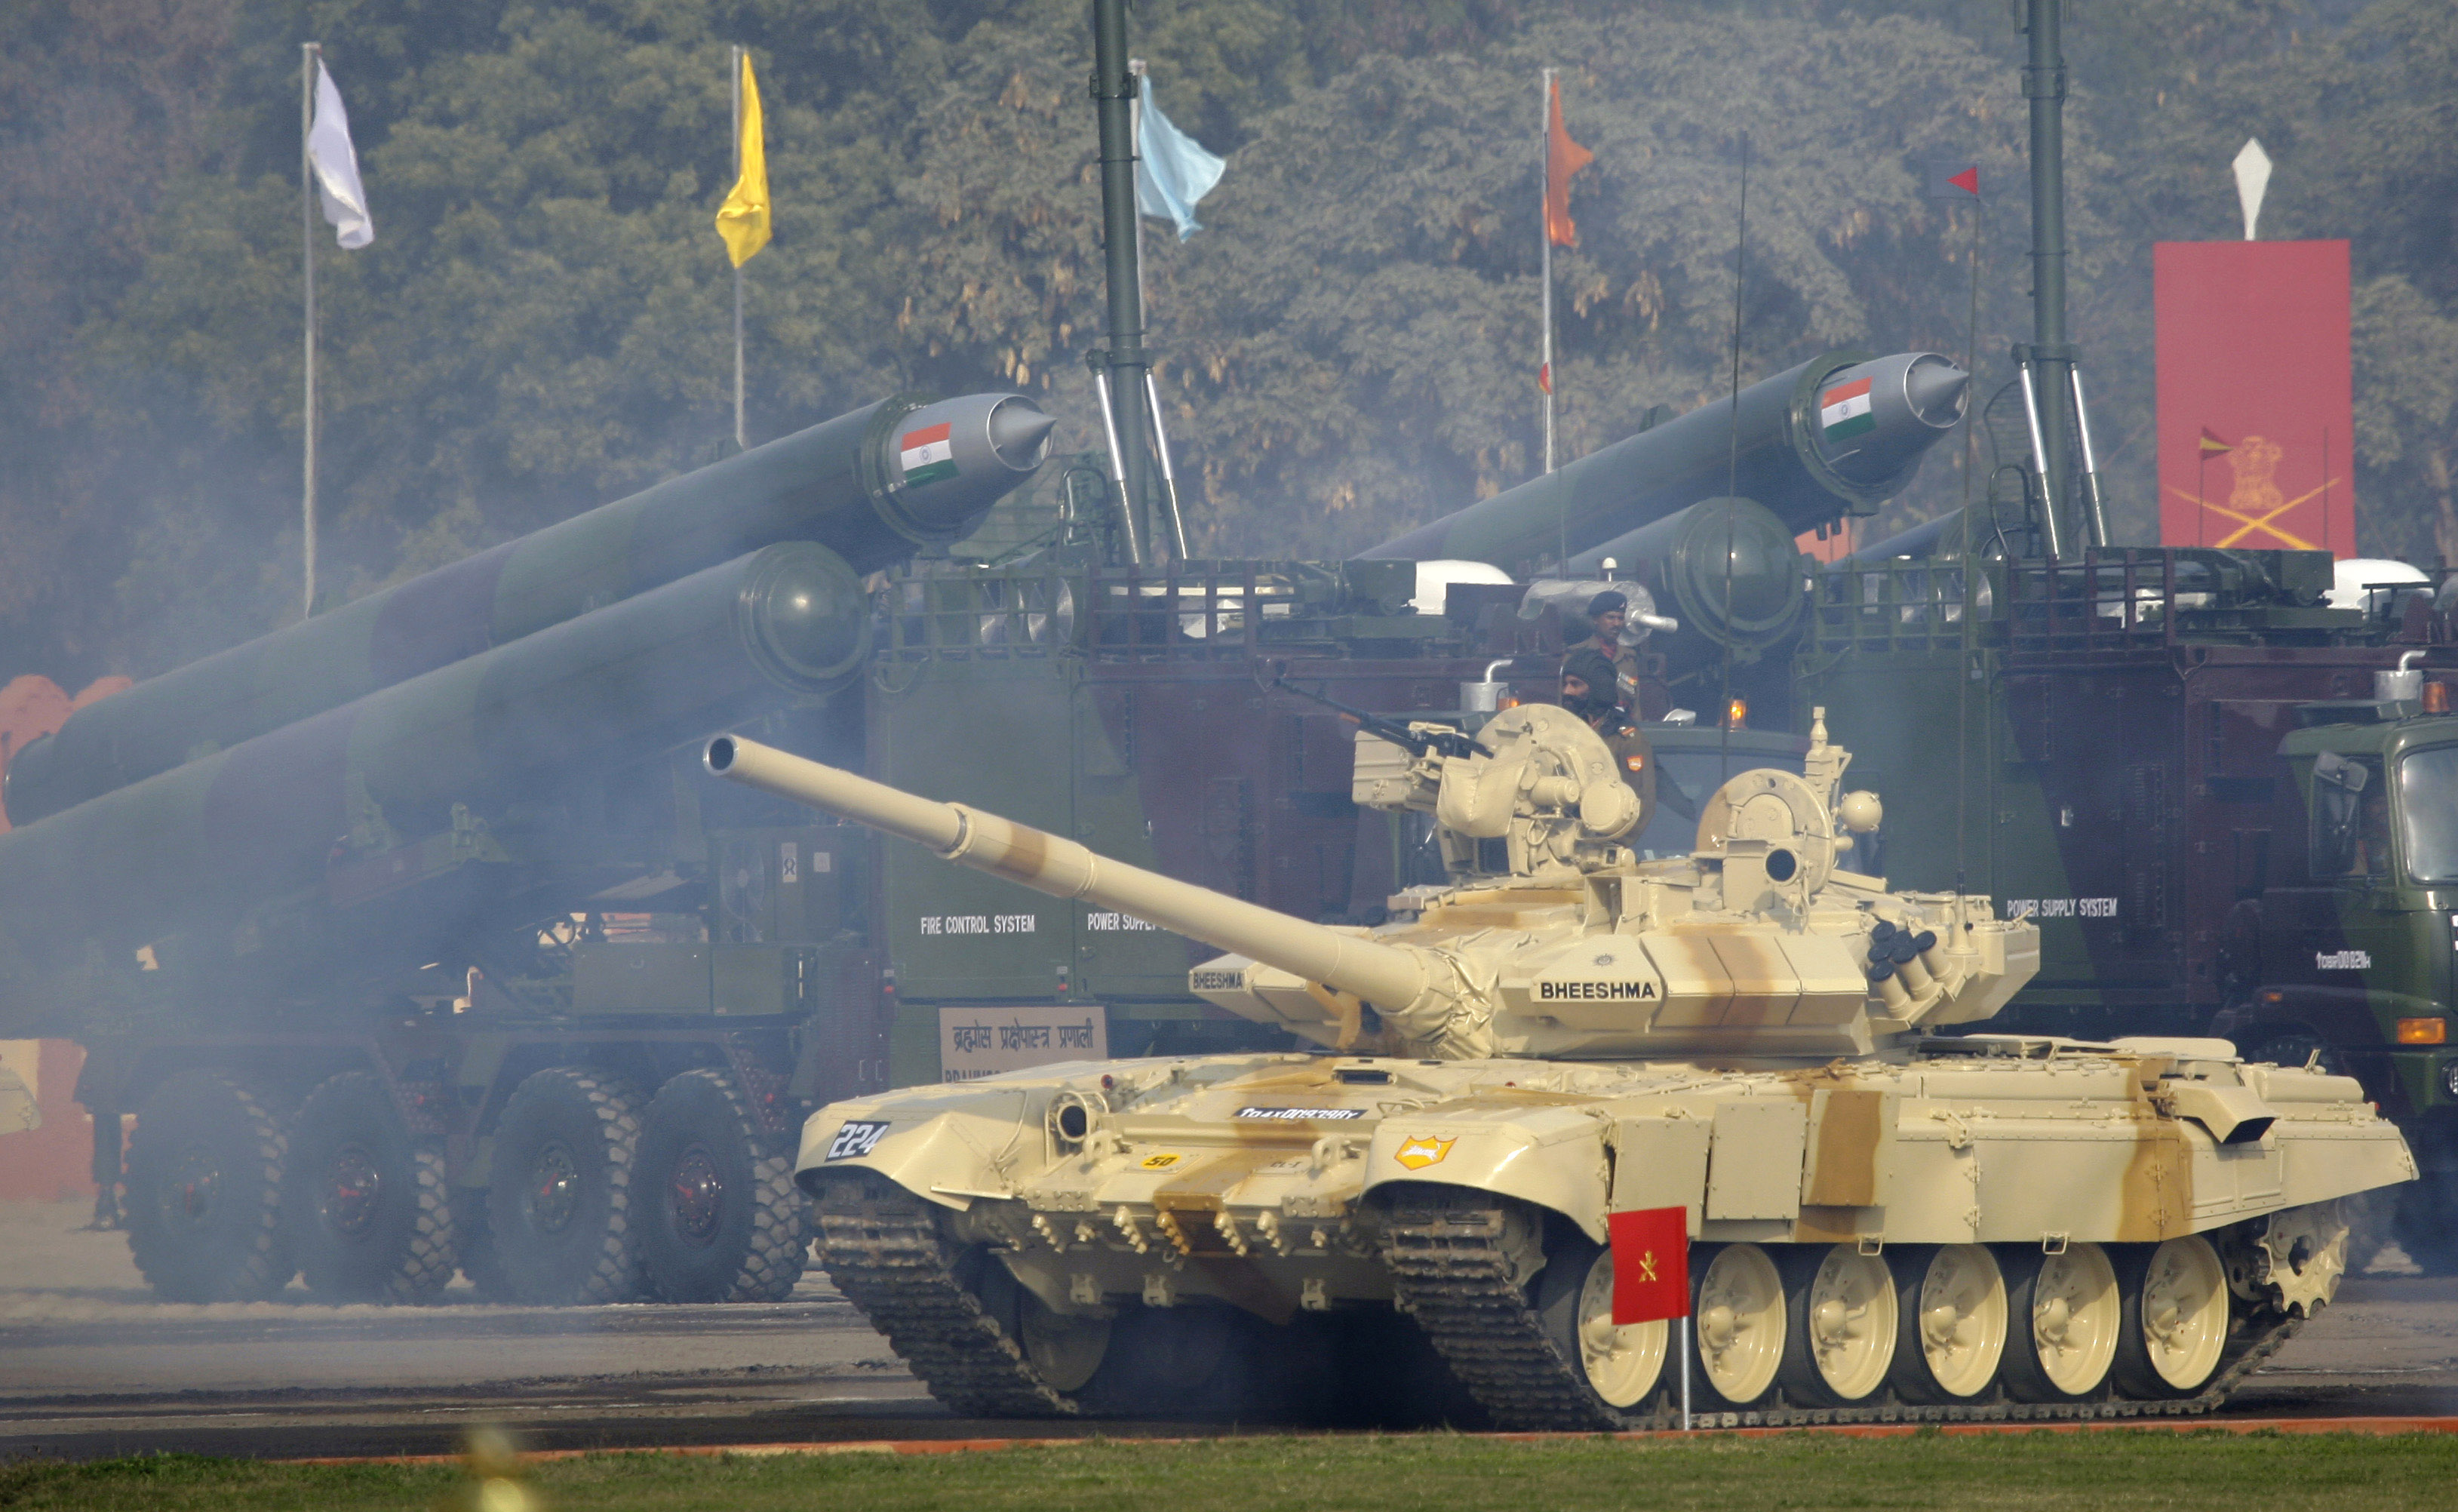 An Indian Army Bhishma tank, the locally assembled version of the T-90 S tank, rolls in front of vehicle mounted Brahmos missiles during Army Day parade in New Delhi, 2009.